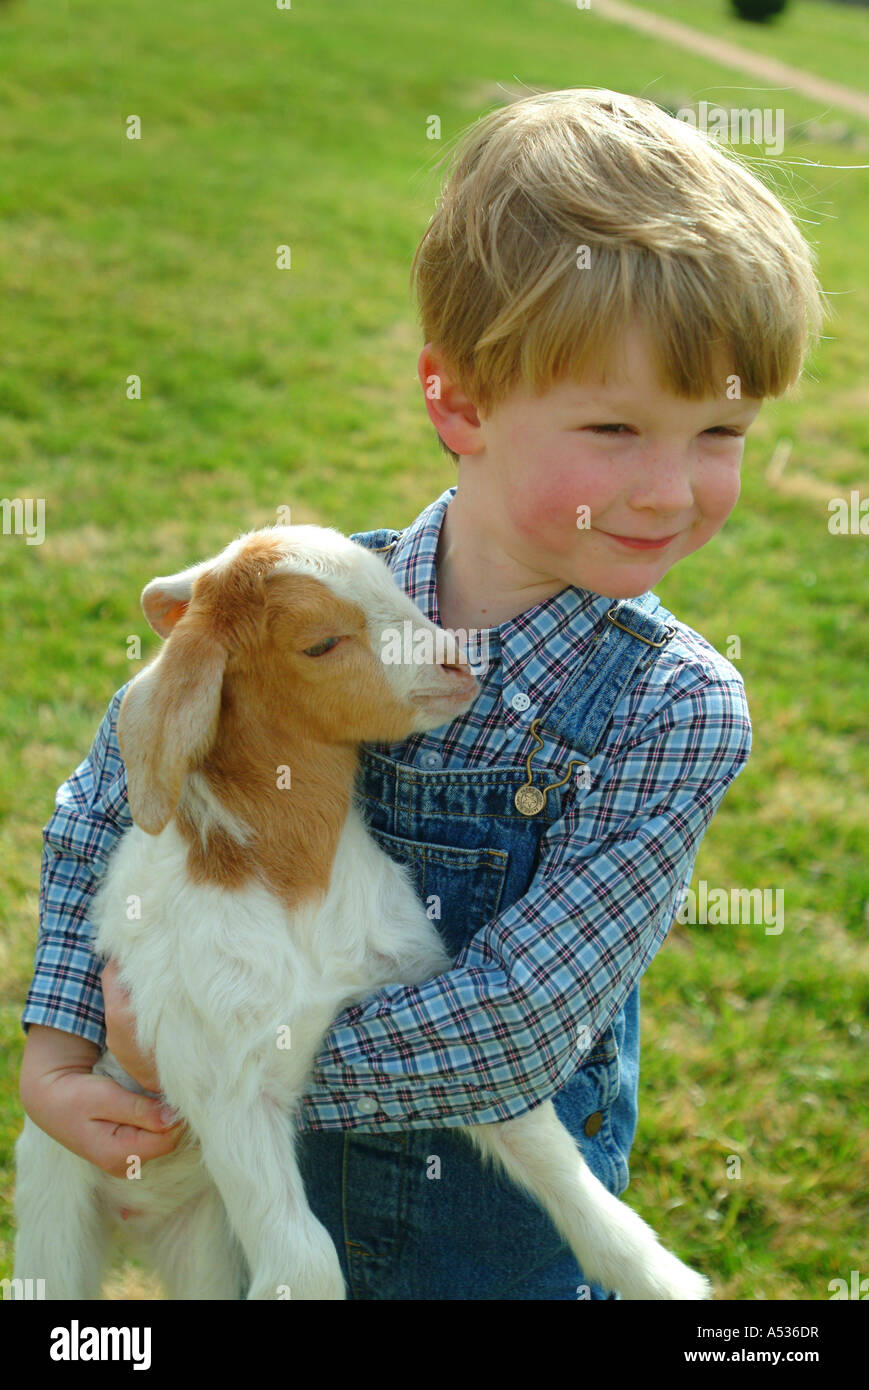 a-boy-and-a-baby-goat-on-a-farm-in-virgi